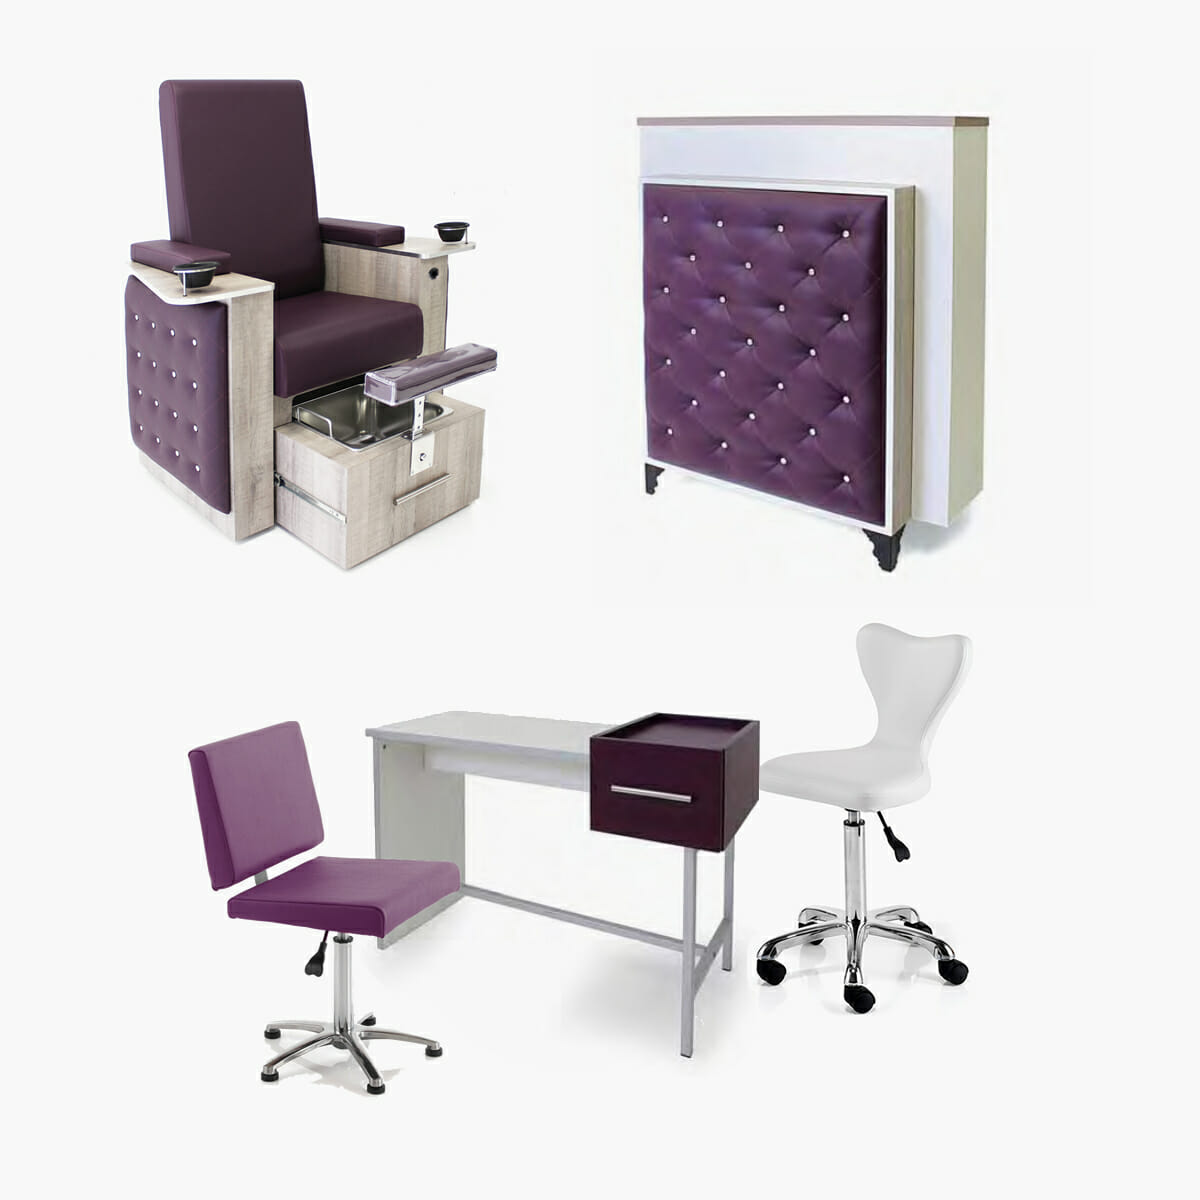 Rem bliss beauty furniture package direct salon furniture for Modern salon furniture packages